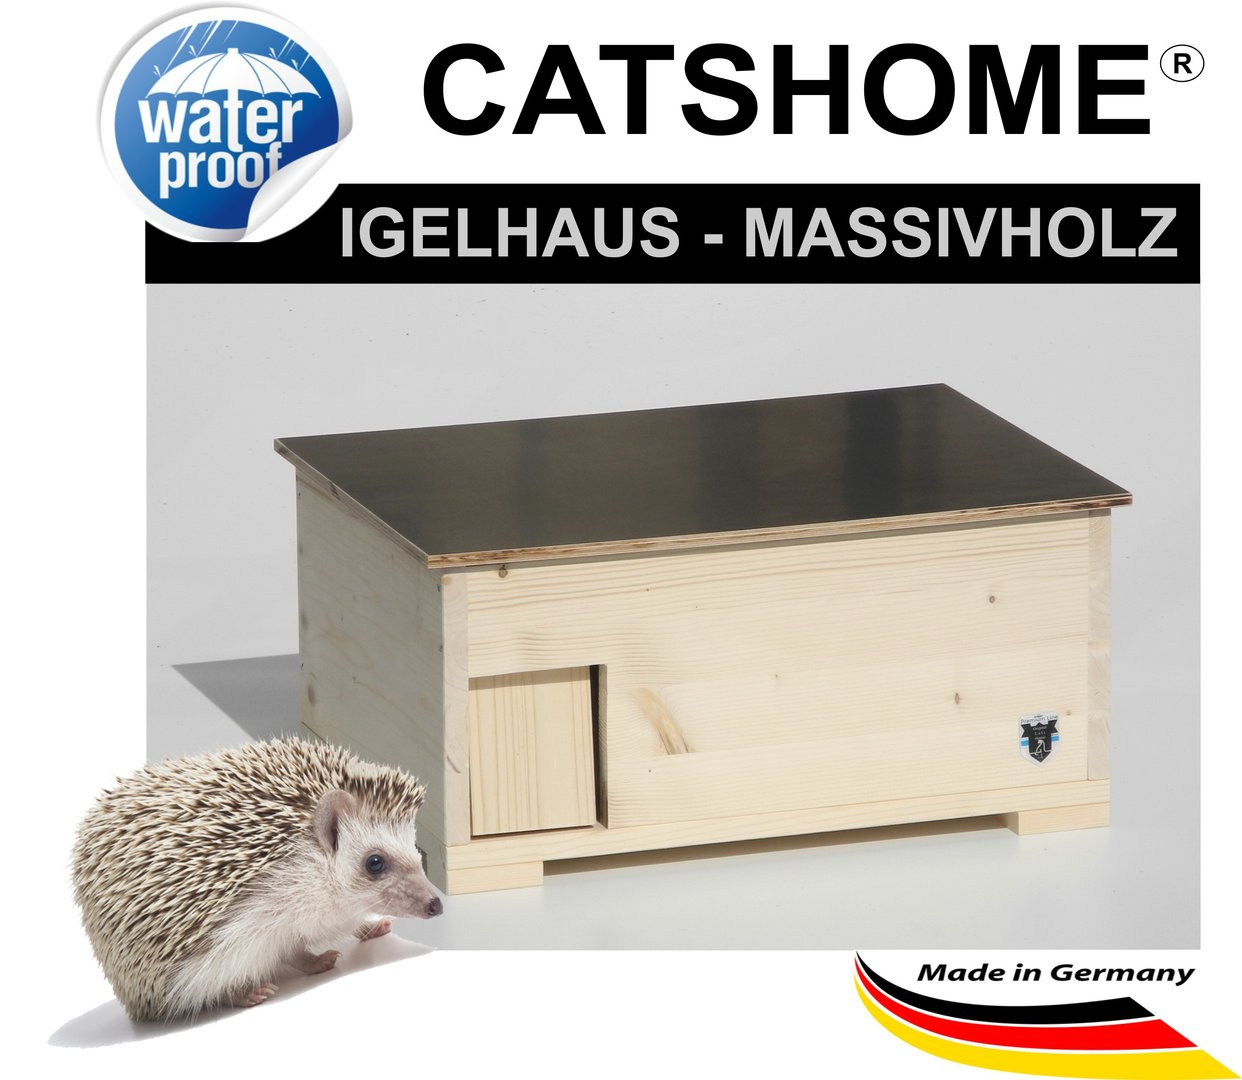 Igelhaus Igelfutterhaus XL natur von Hand gefertig - Made in Germany